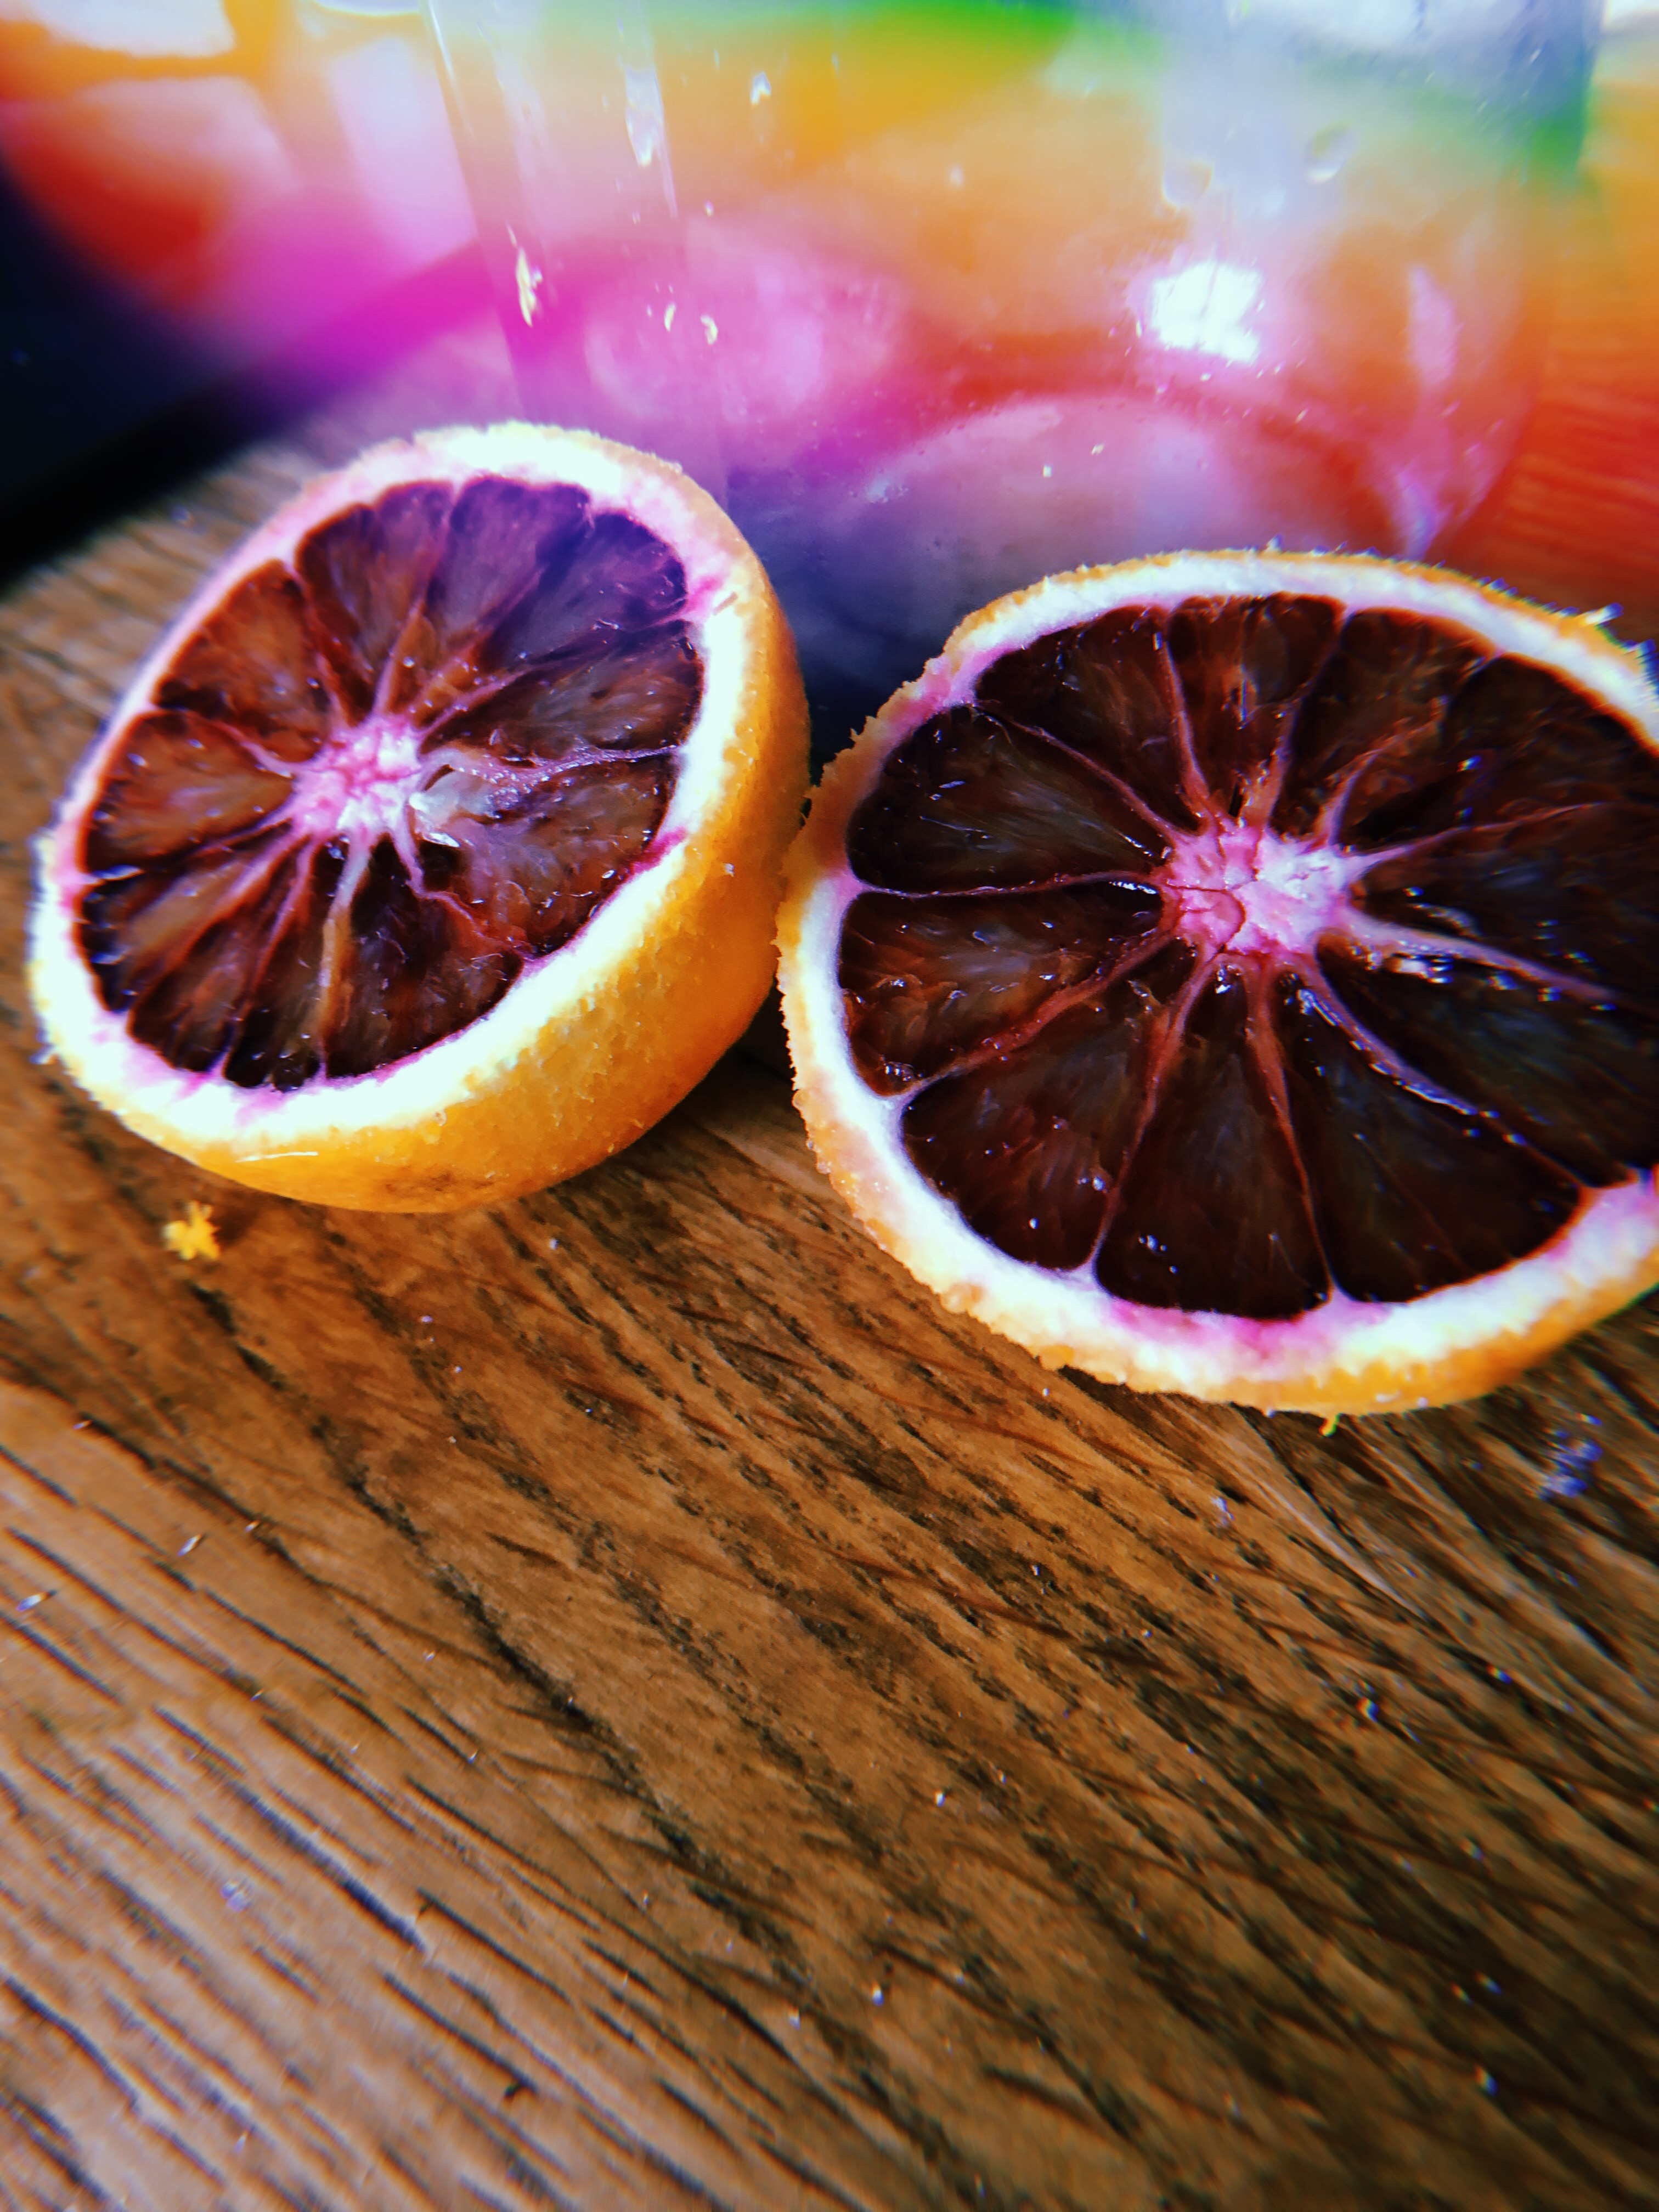 blood orange sits cut open on wooden countertop